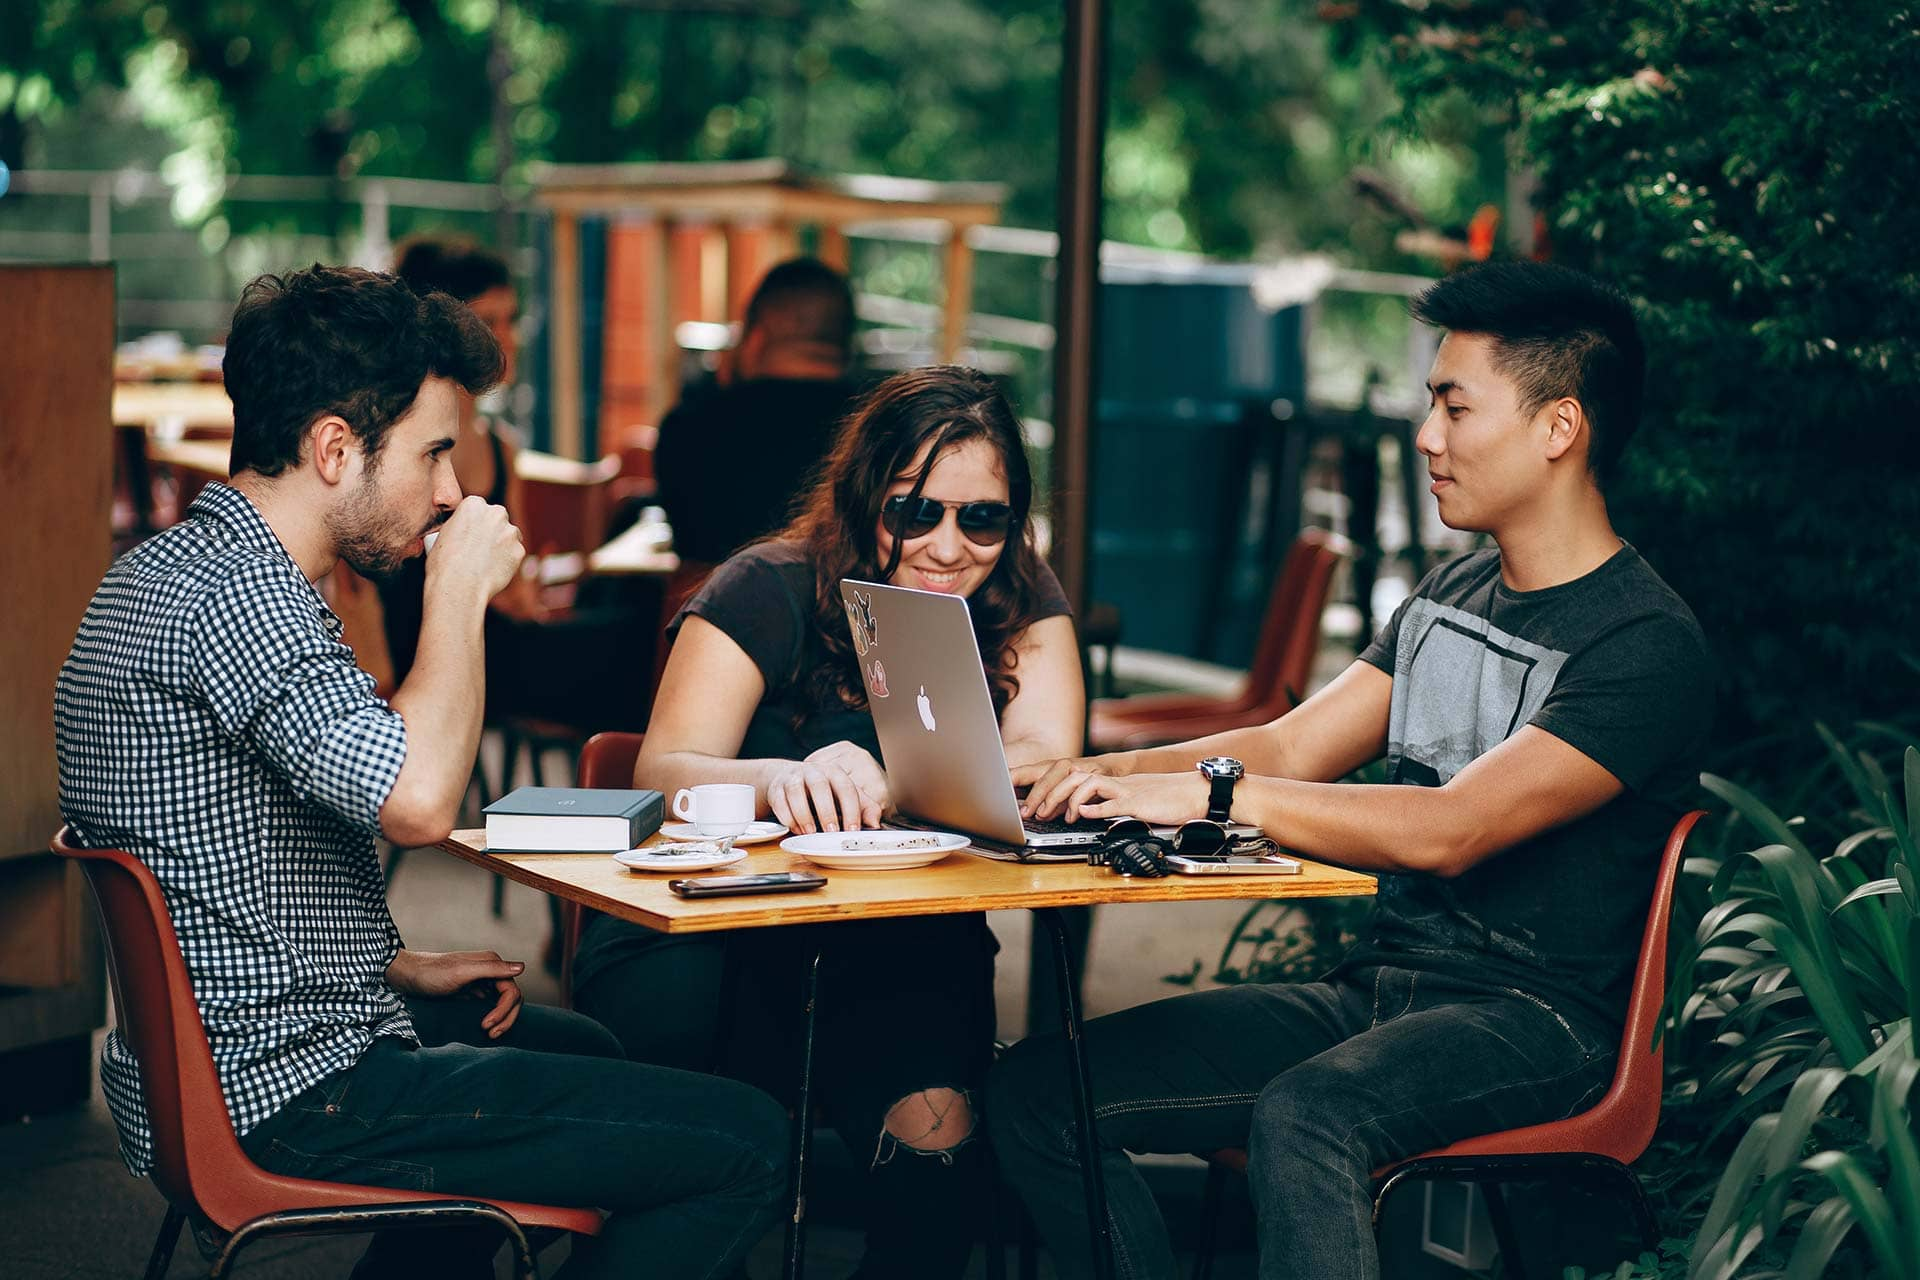 Is a lack of diversity in the workplace a turn-off for millennials?